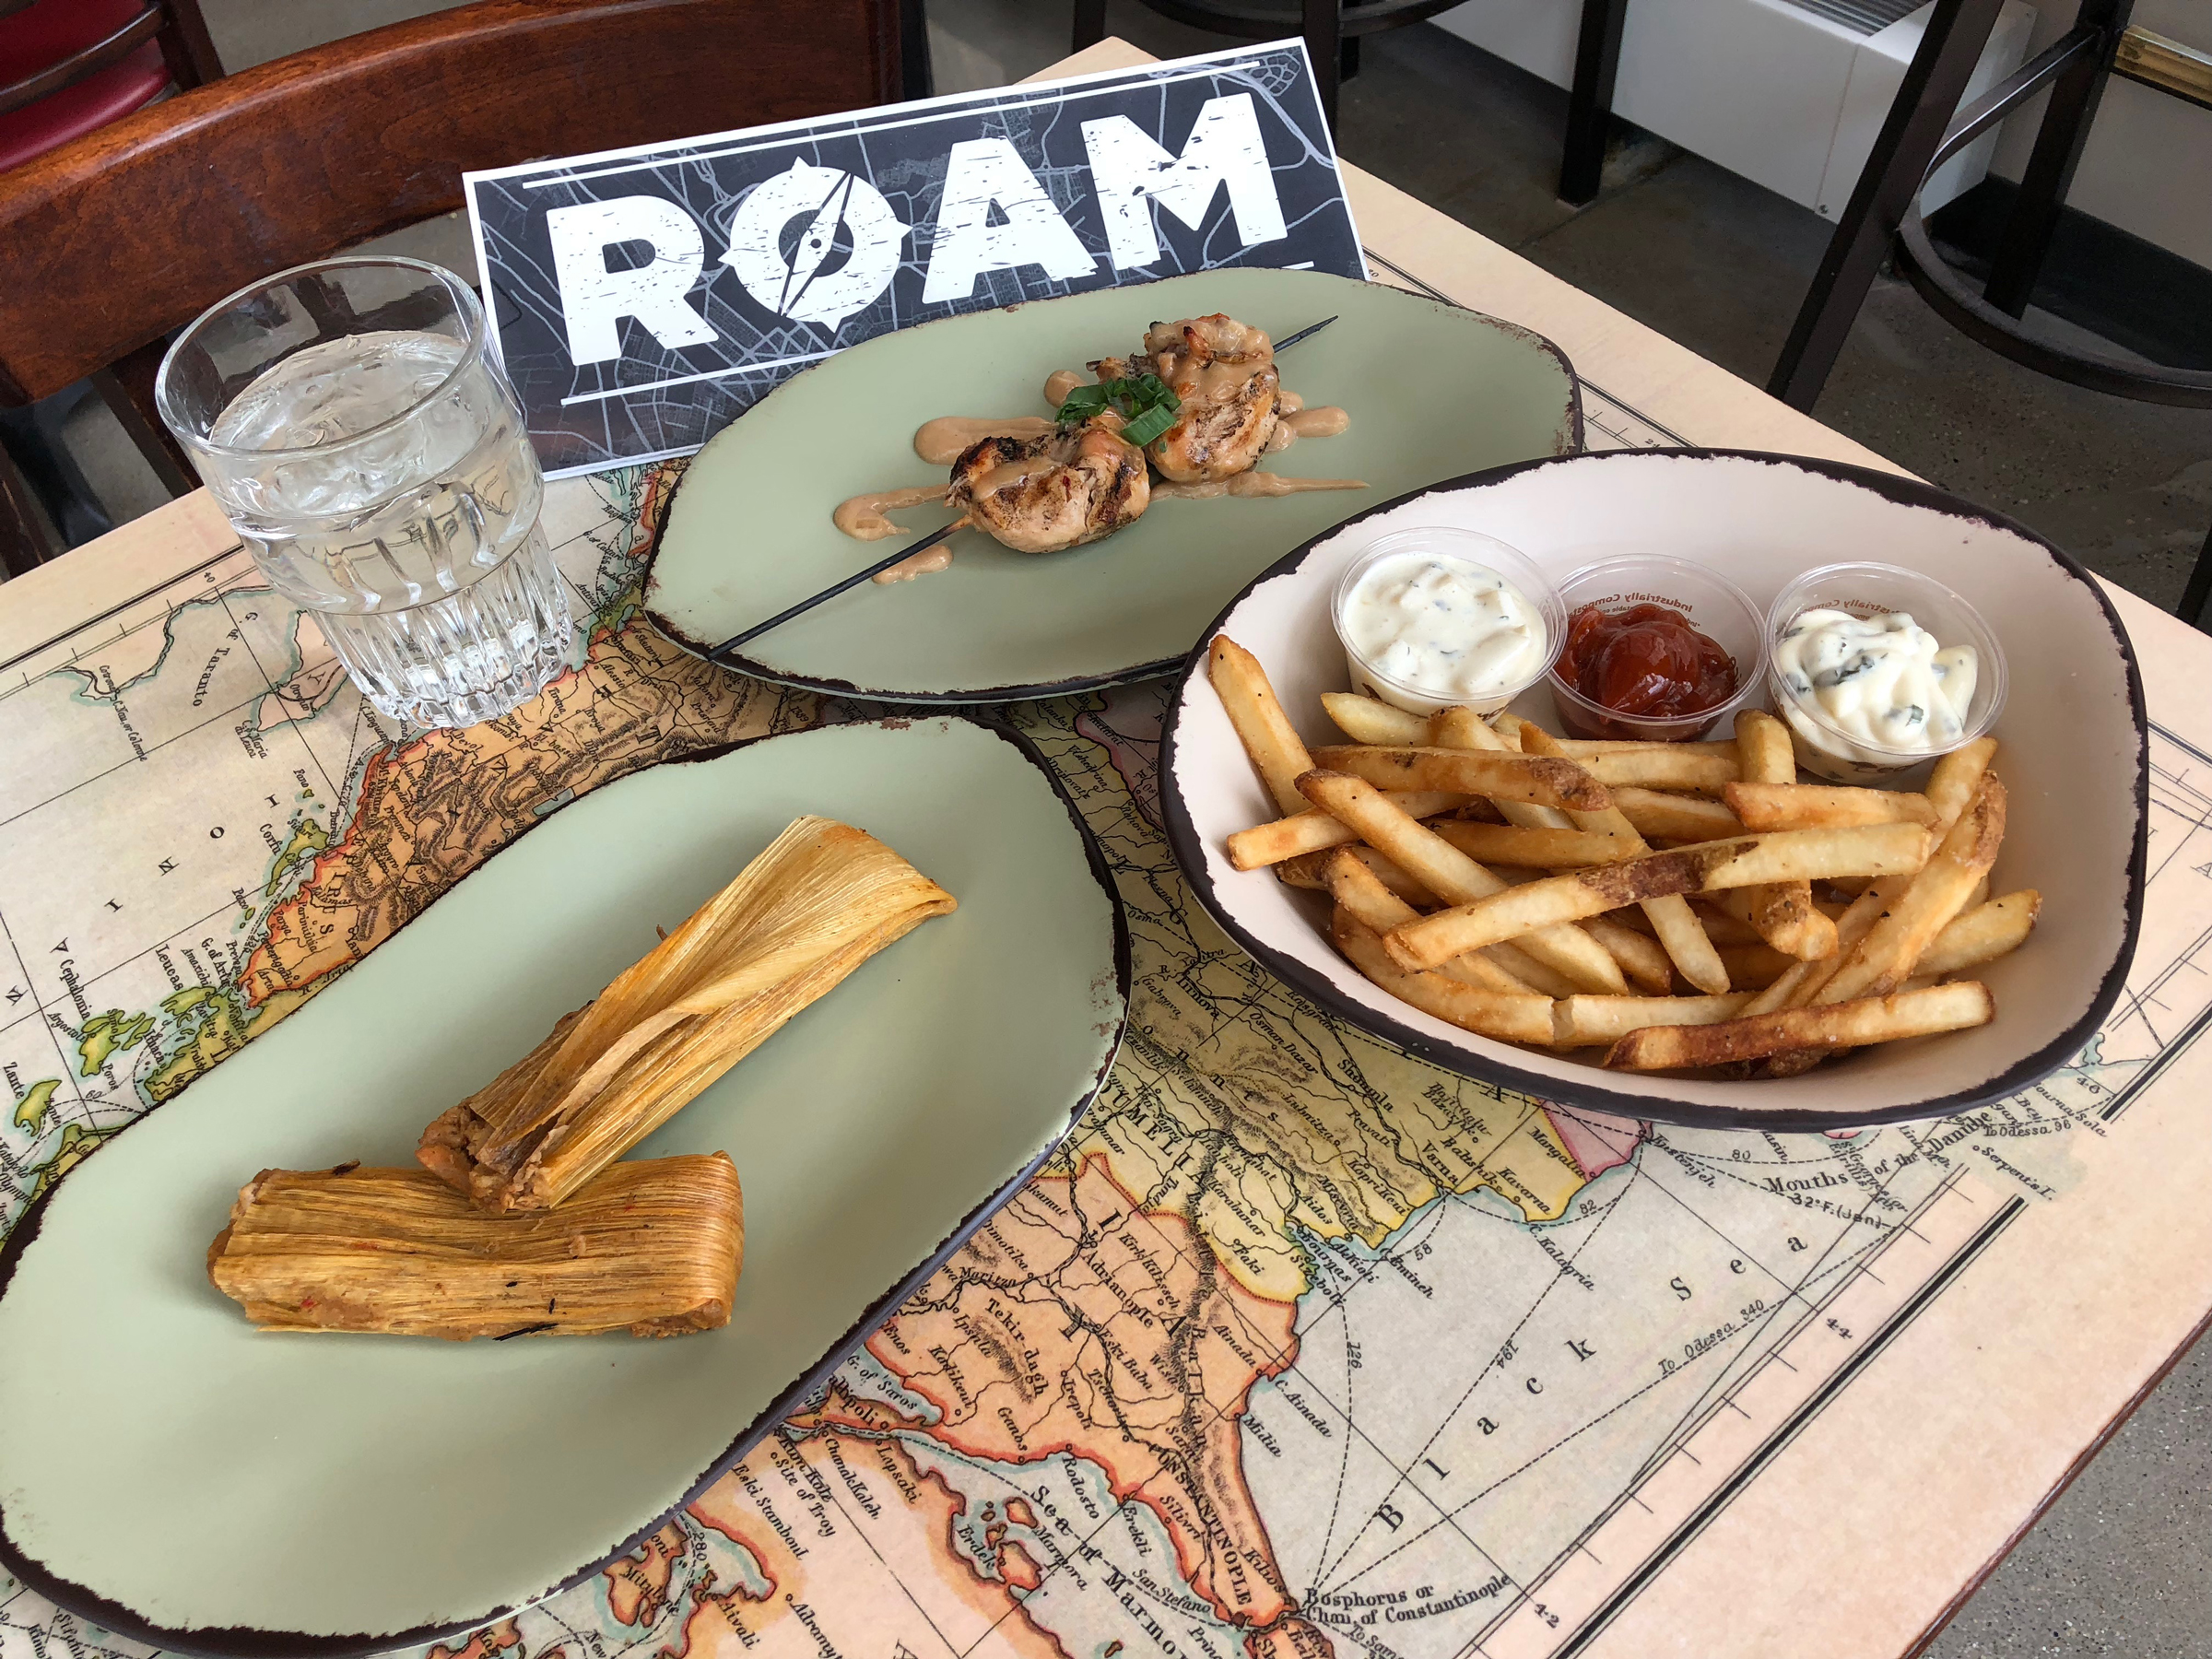 Roam's satay, tamales and chips 'n dips.